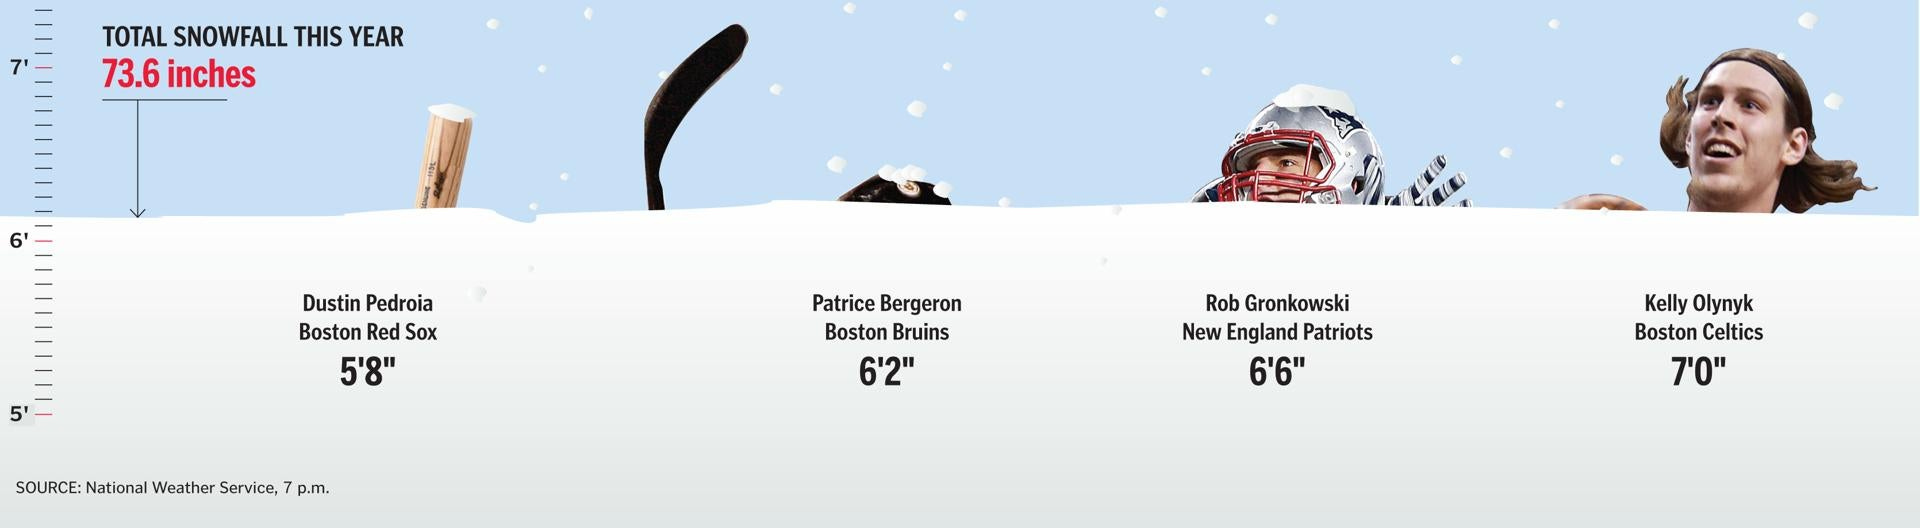 Total Snowfall in Boston Area this Year